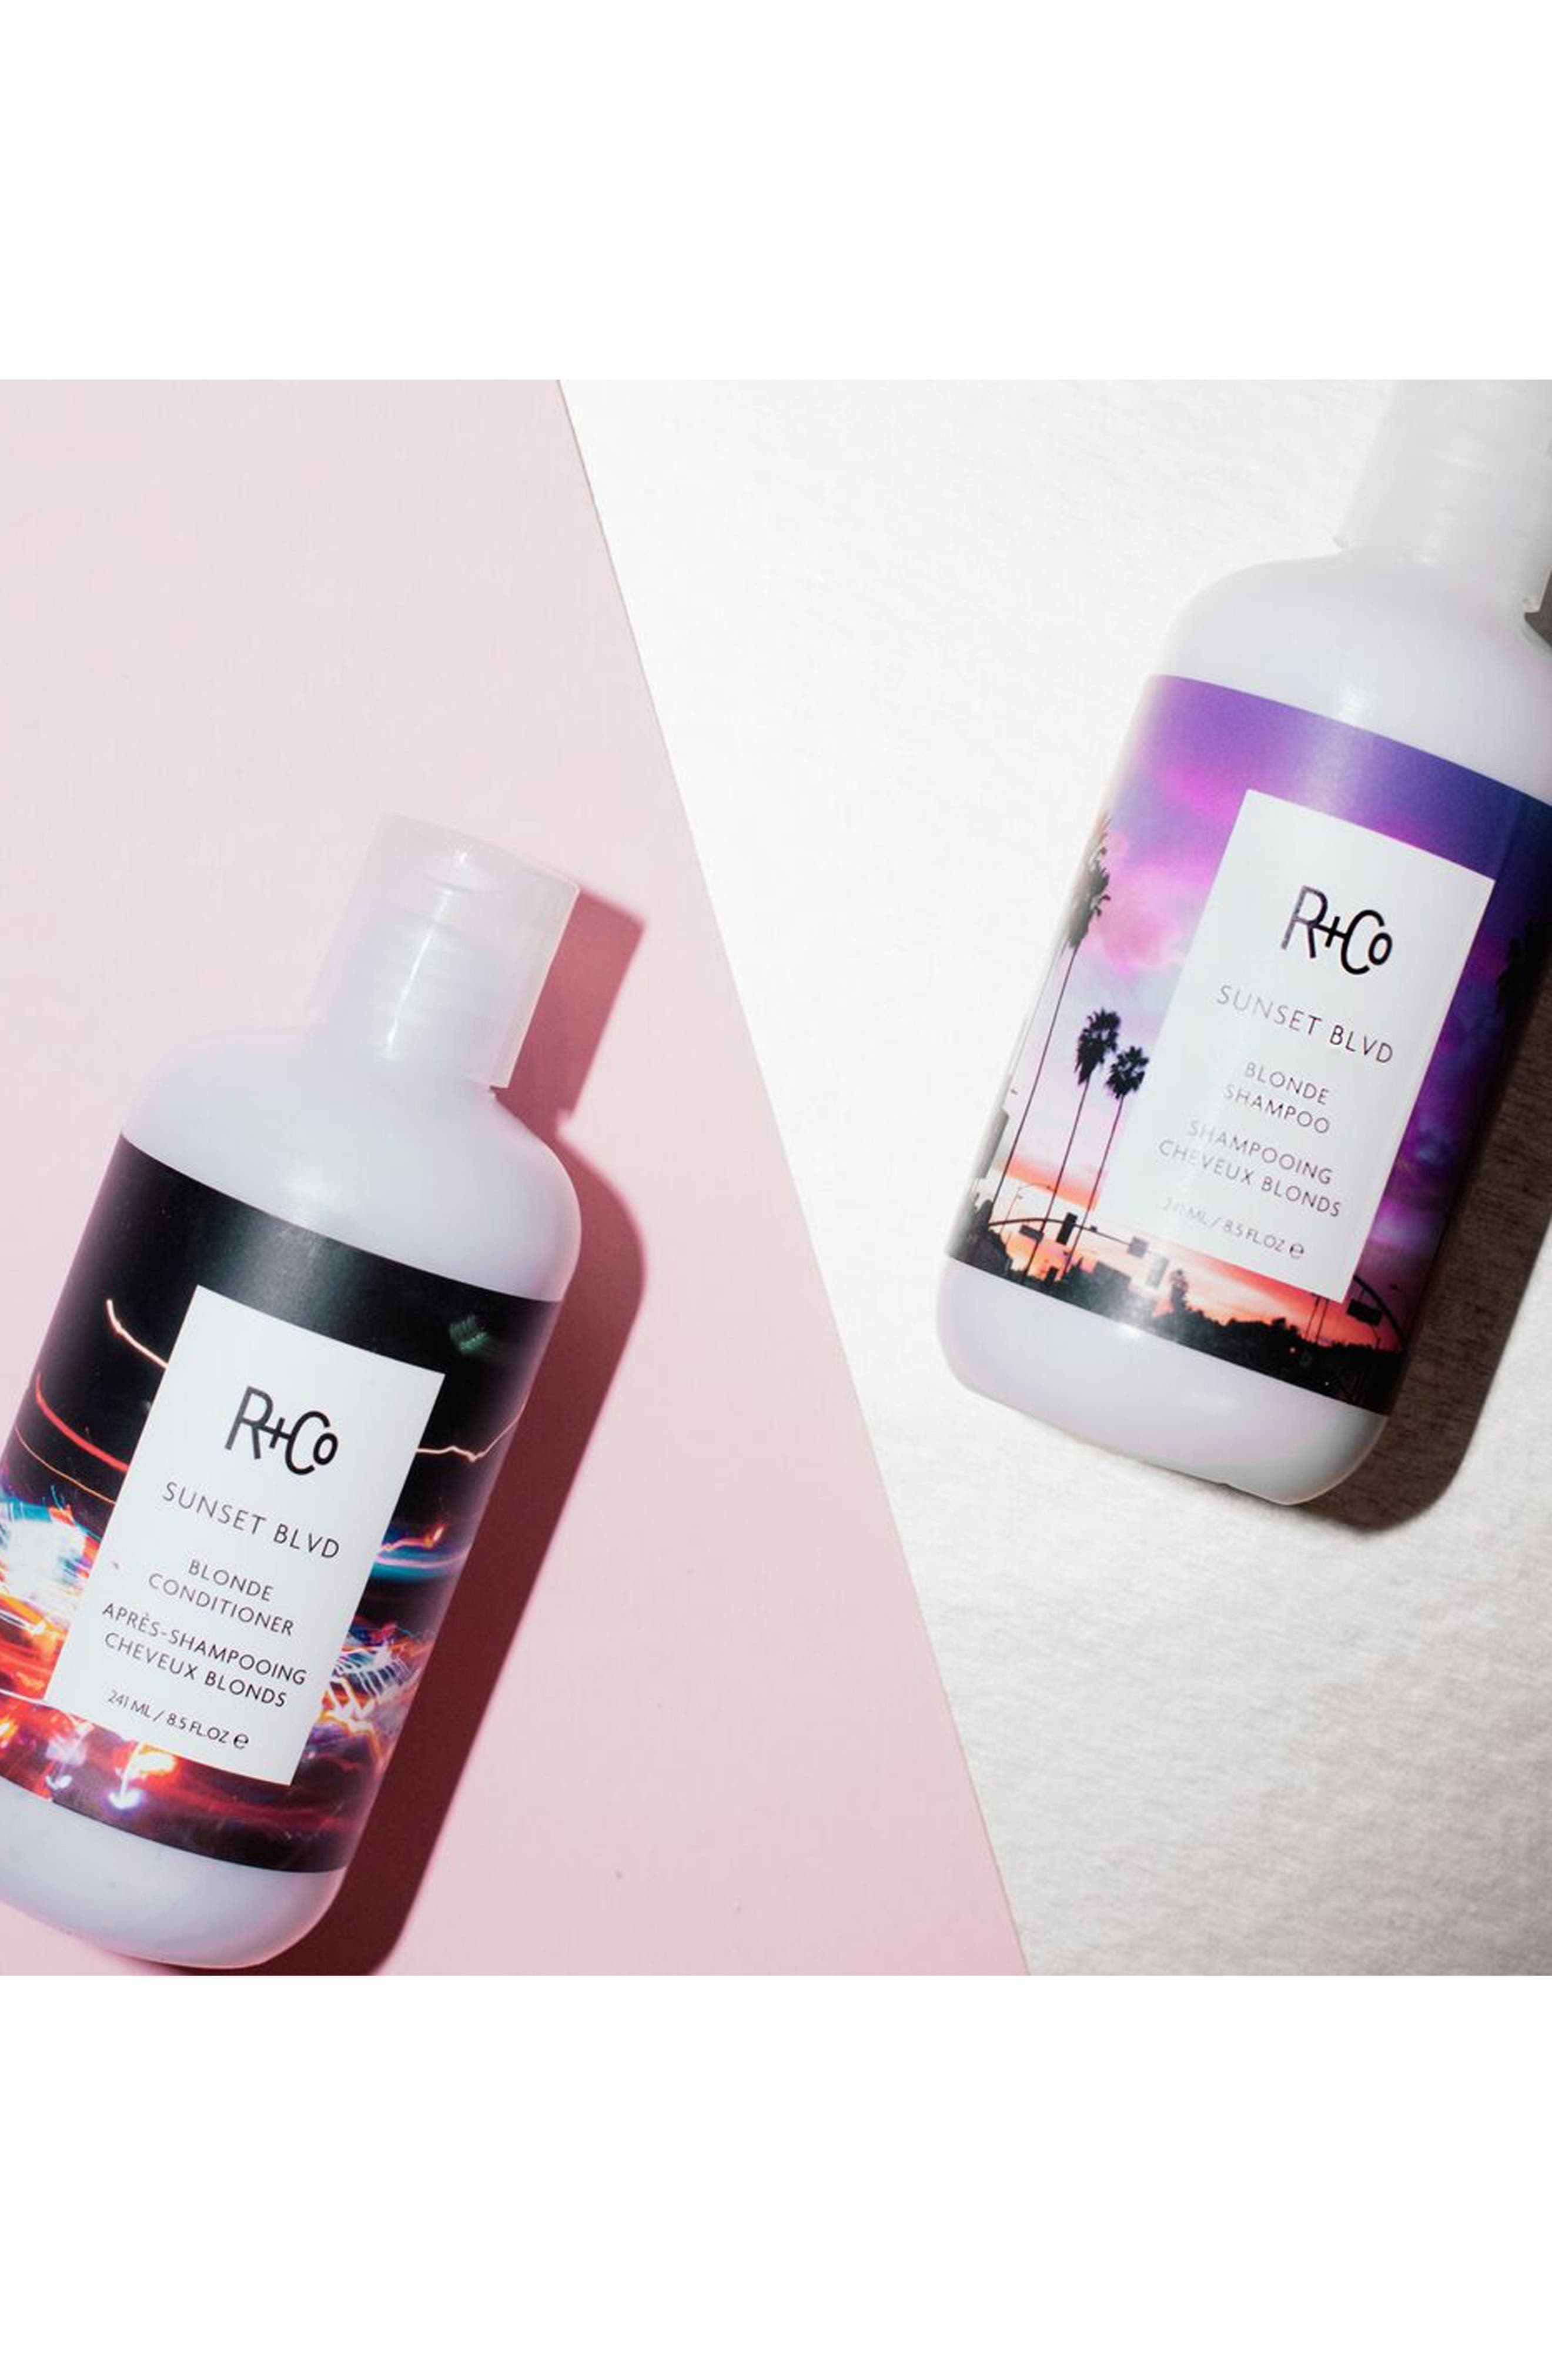 R+CO, SPACE.NK.apothecary R+Co Sunset Blvd Blonde Shampoo, Alternate thumbnail 4, color, 960